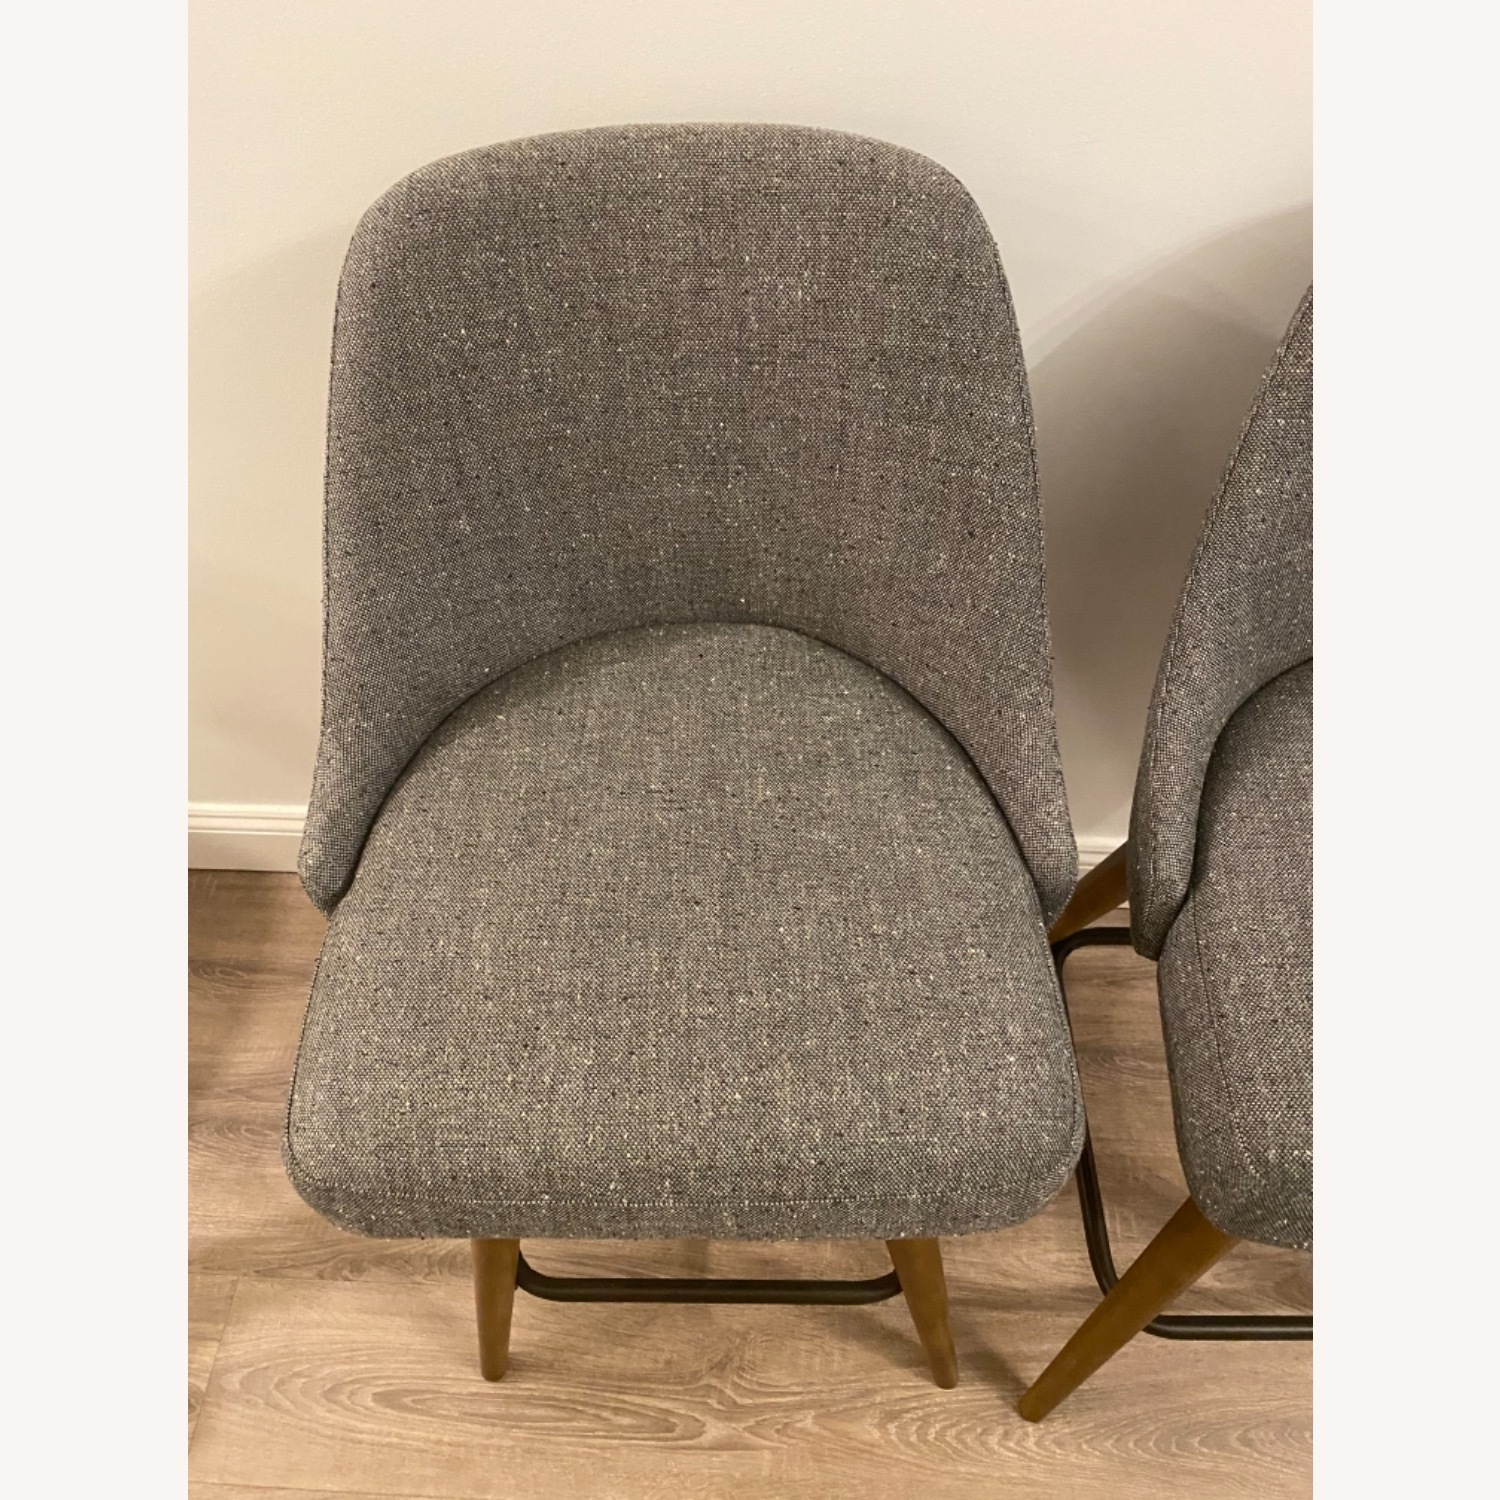 West Elm Upholstered Counter Stools - image-7